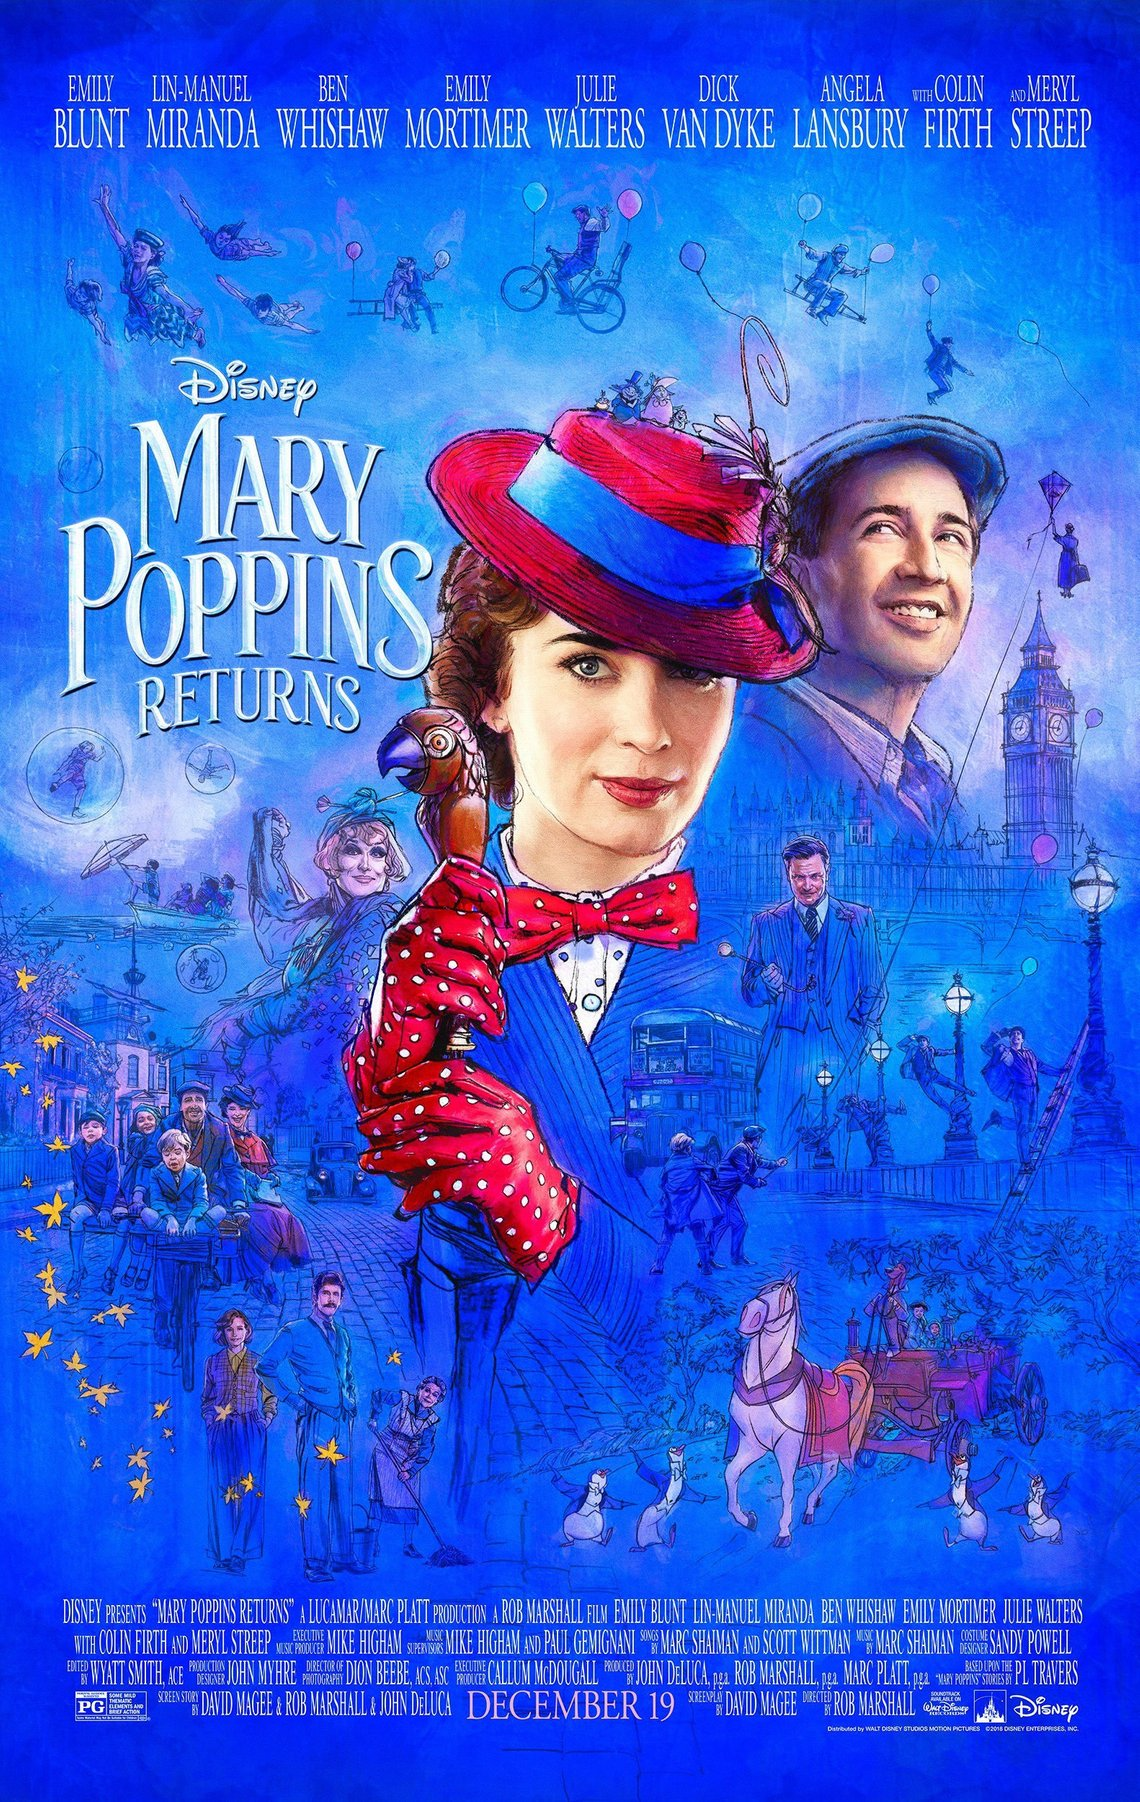 Mary Poppins reutns.jpg